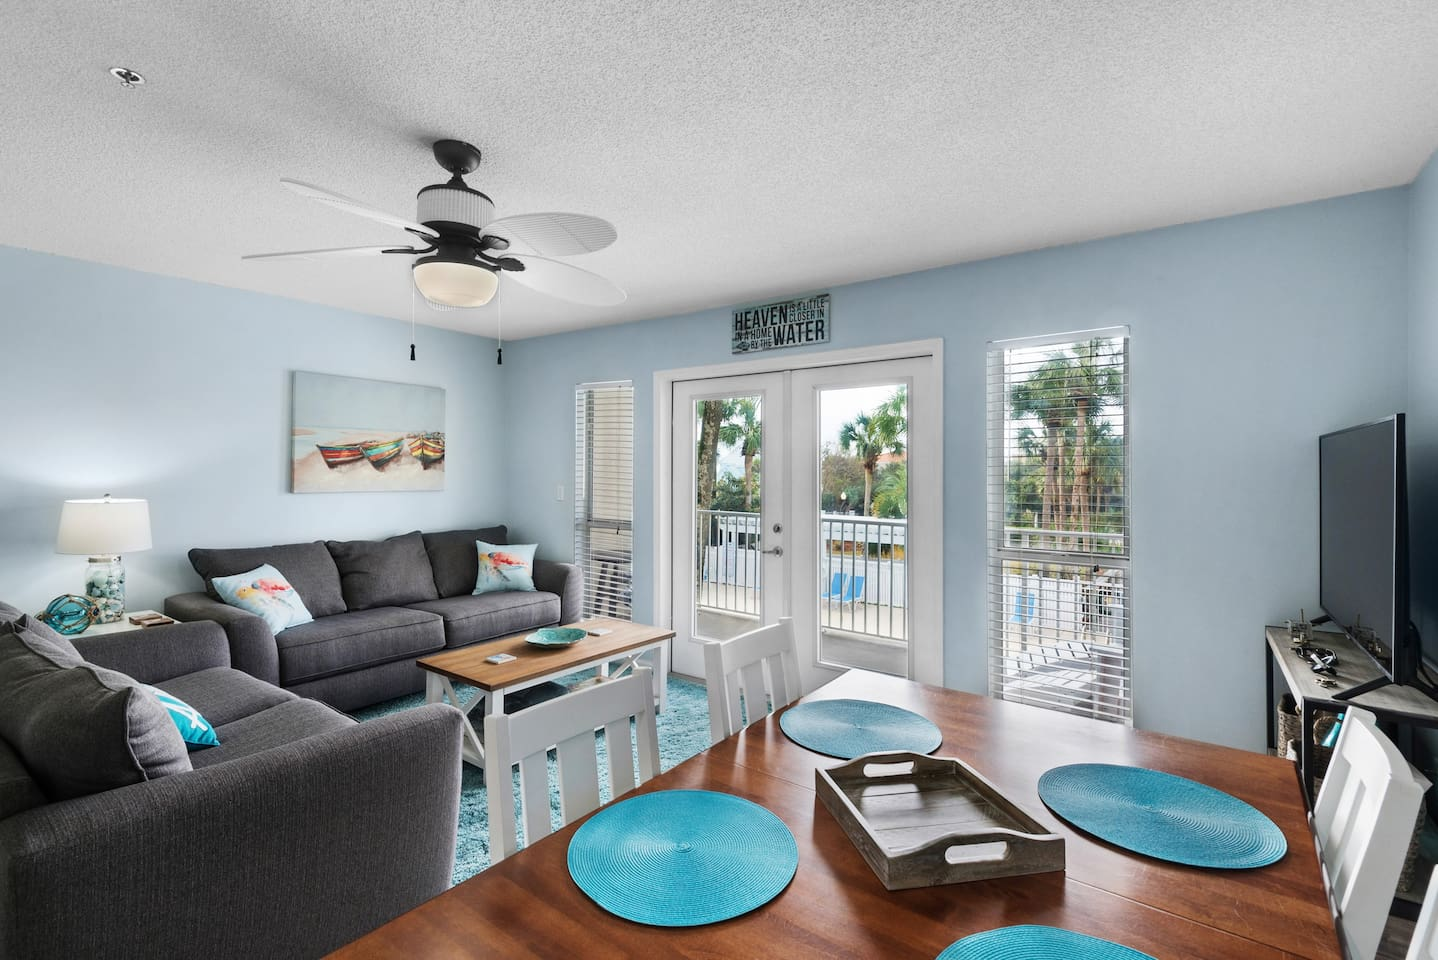 Newly remodeled-Beachy decor, gourmet kitchen, deeded beach access, Gulf and pool views, community has 3 pools